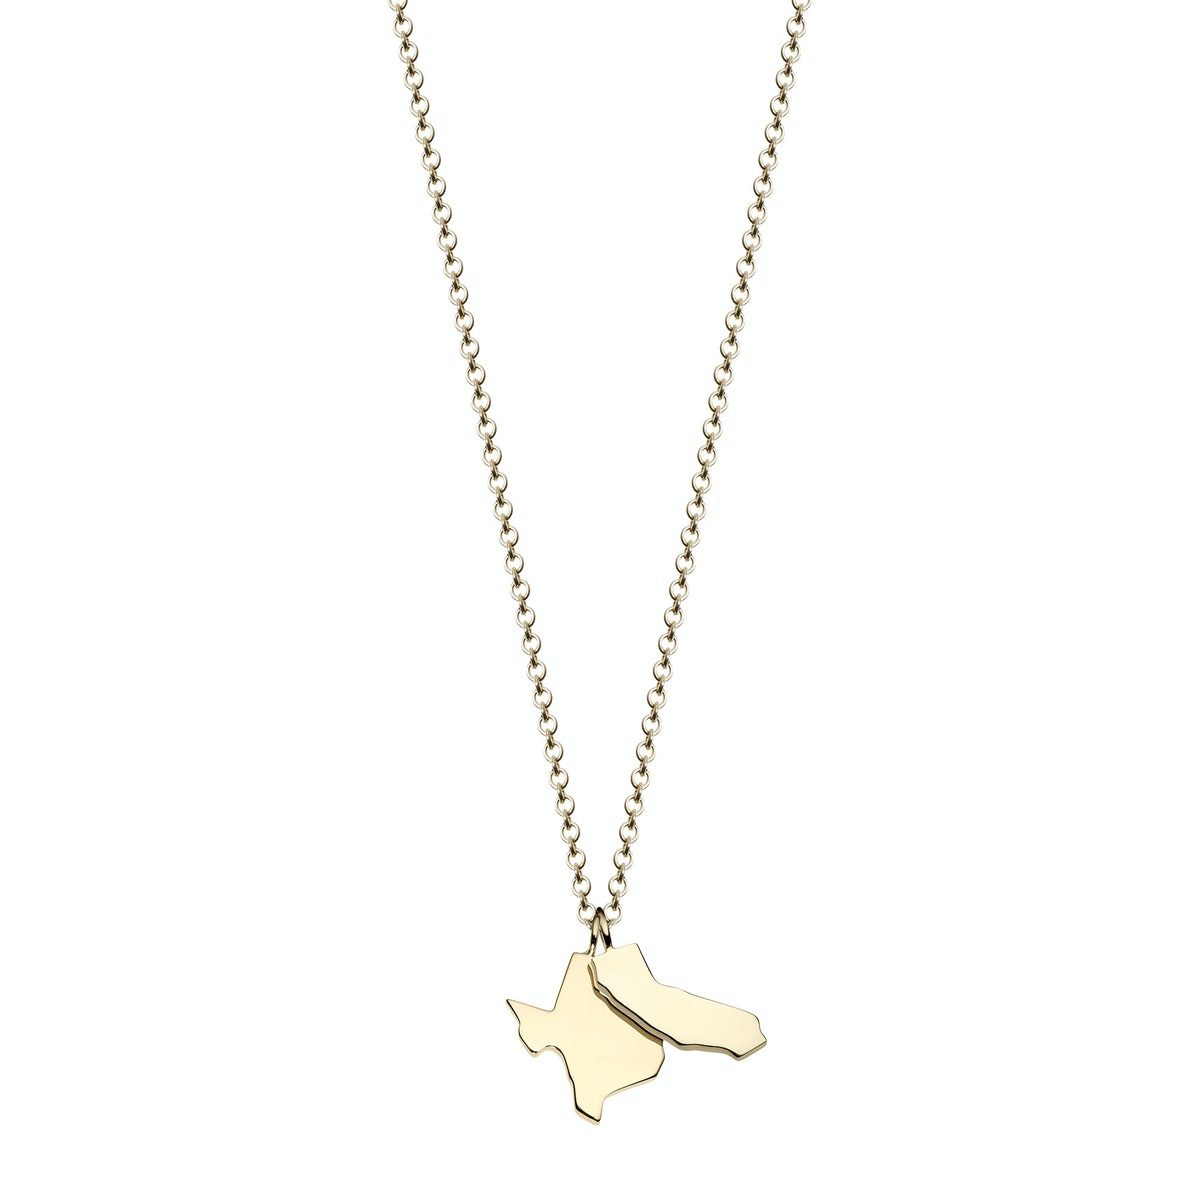 Minor Obsessions 10K yellow gold necklace